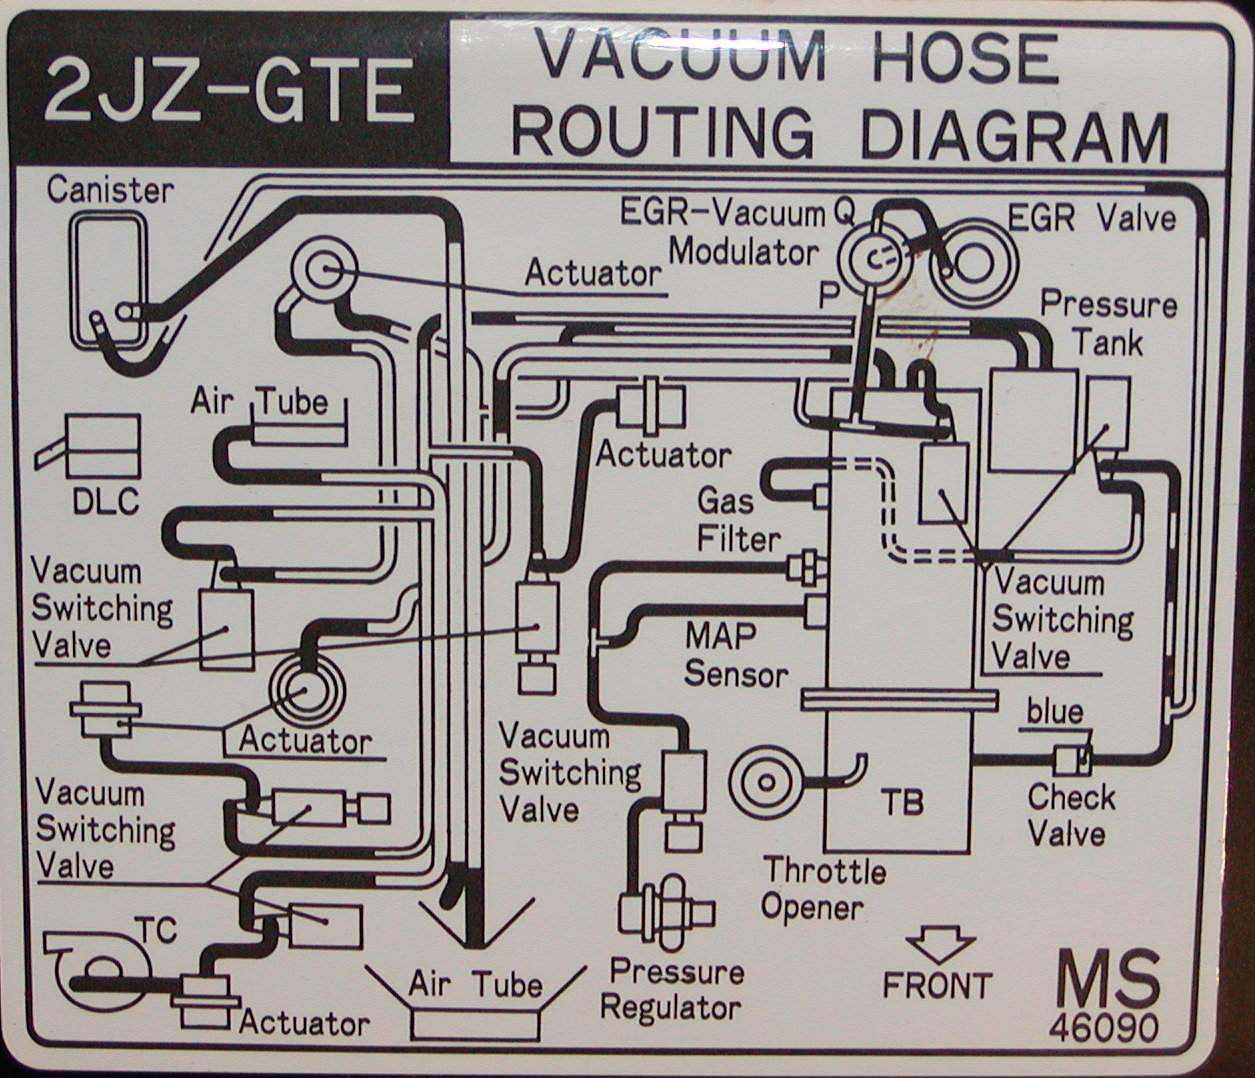 2jzgte Vacuum Hose Routing Diagram Electrical Wiring Diagrams 2jz Fuse Auto U2022 Mazda B2000